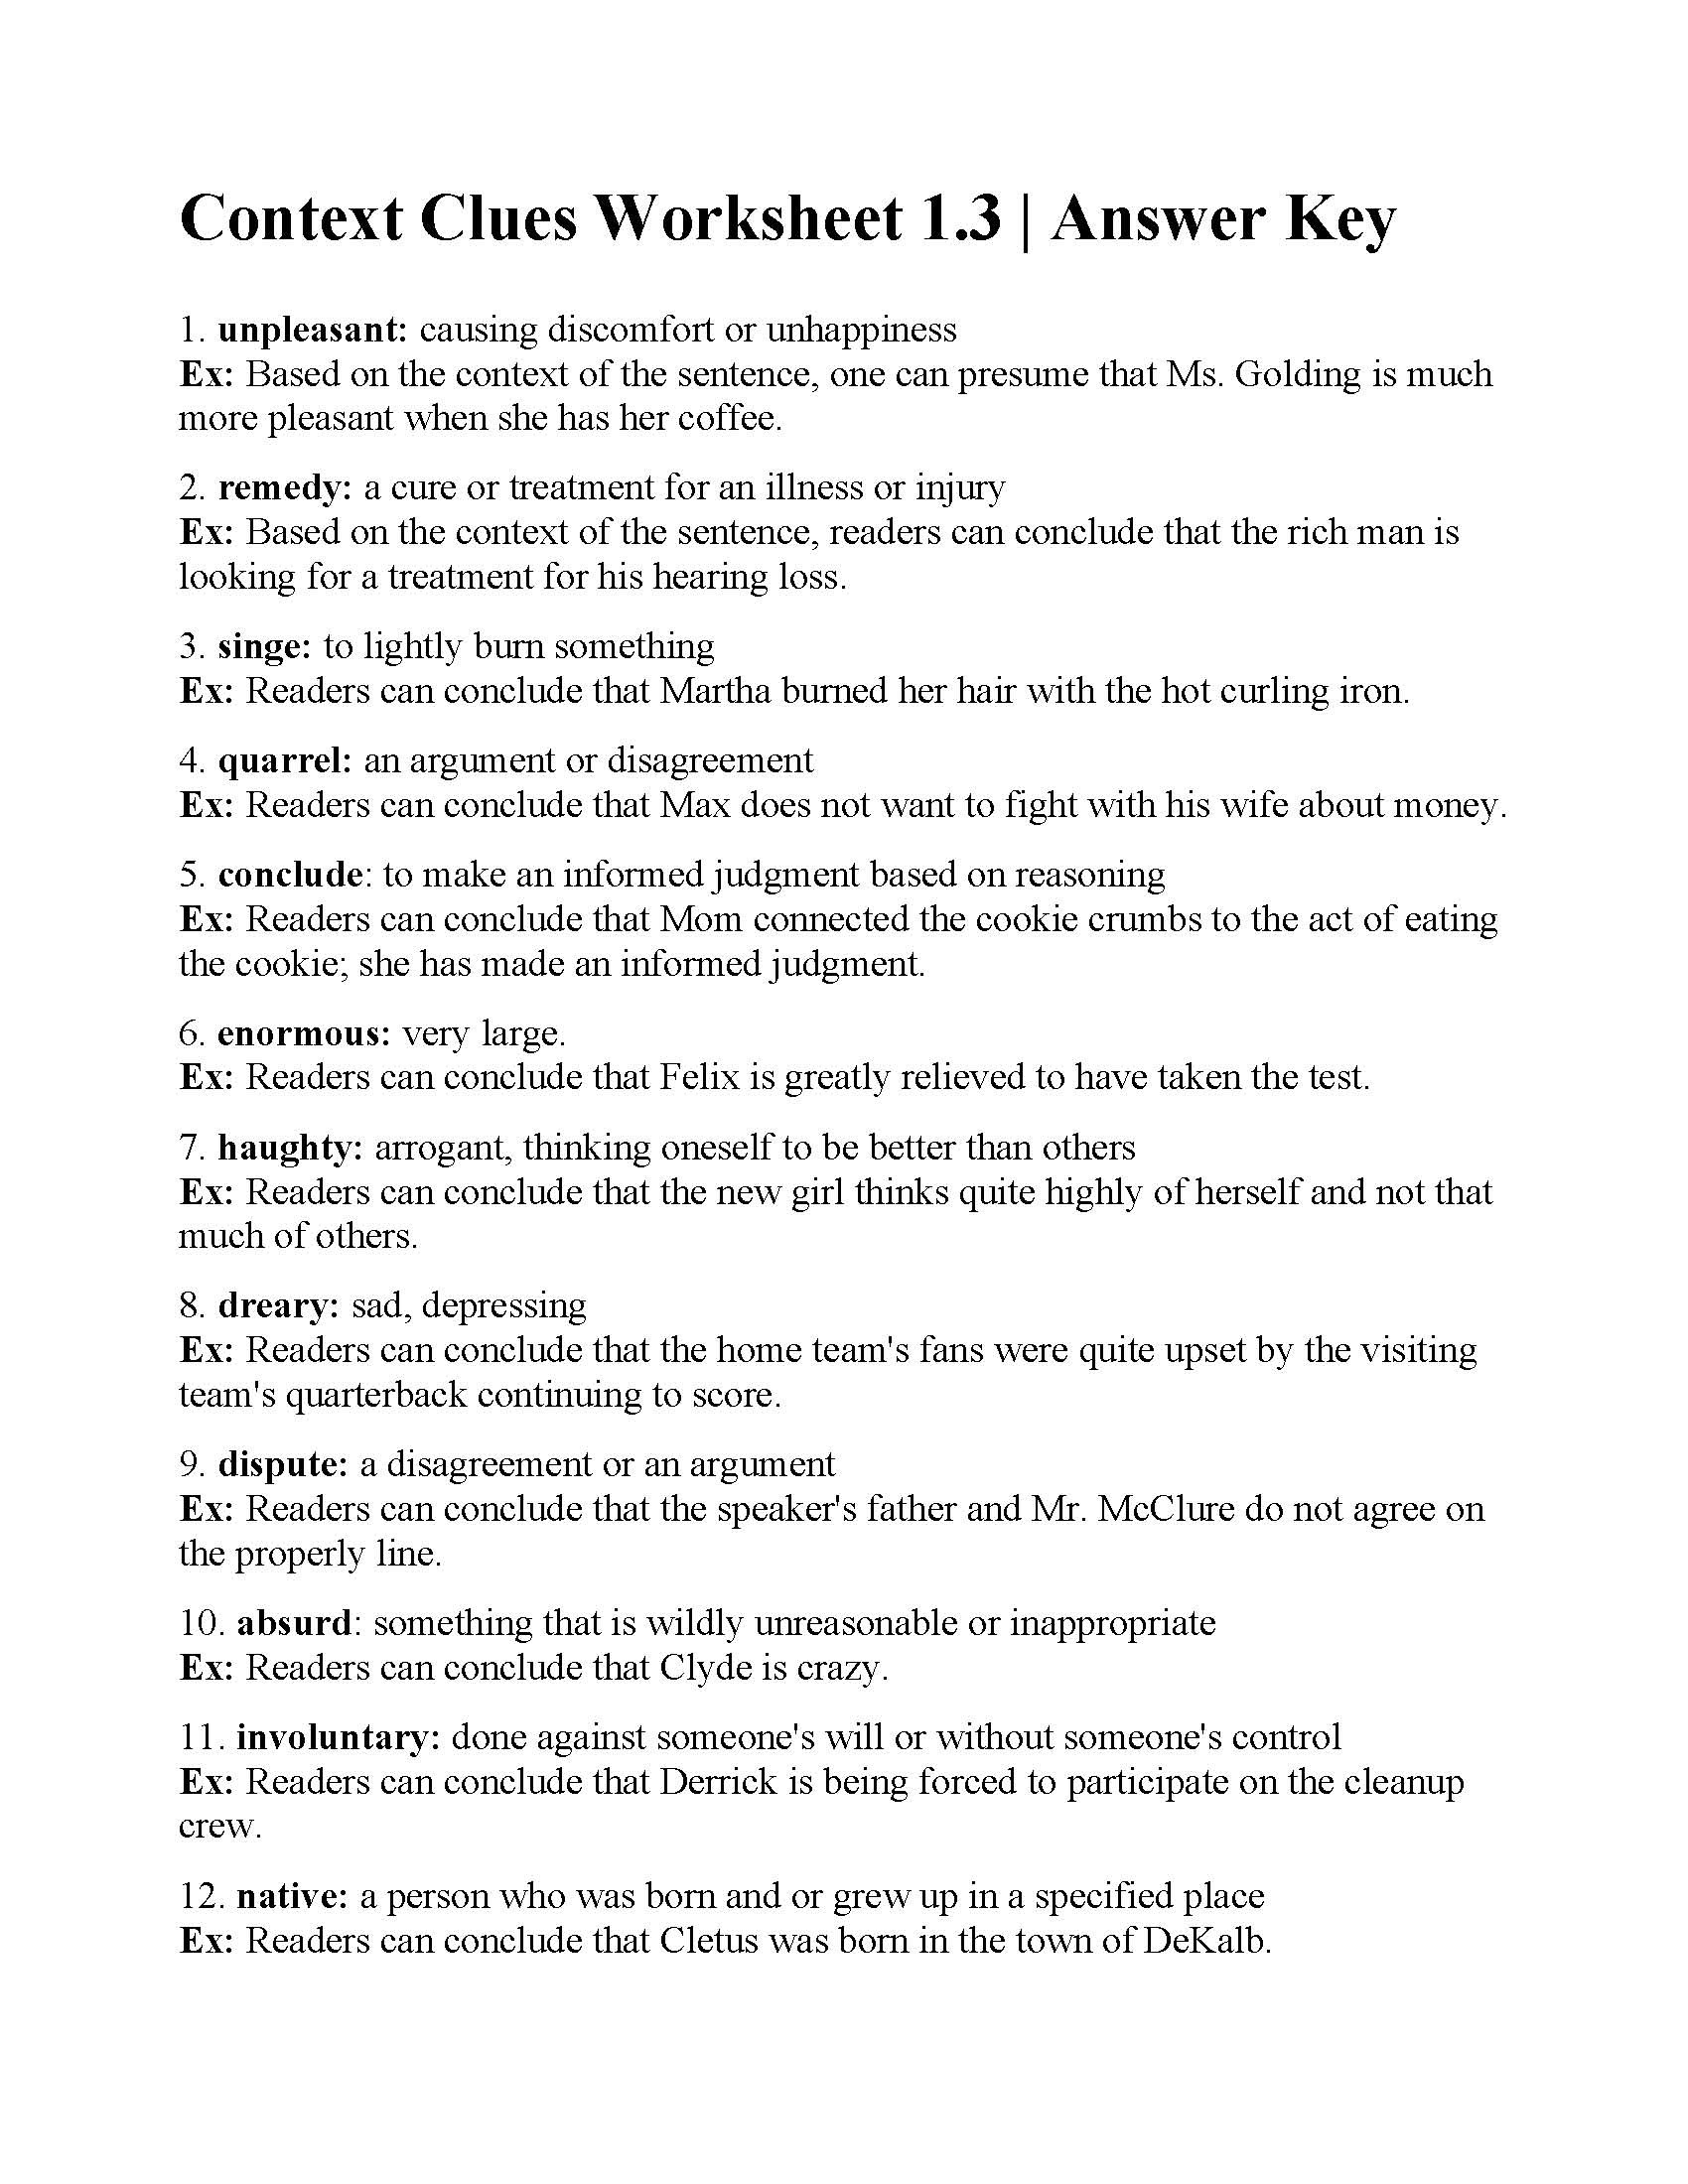 High School Context Clues Worksheets Worksheet For